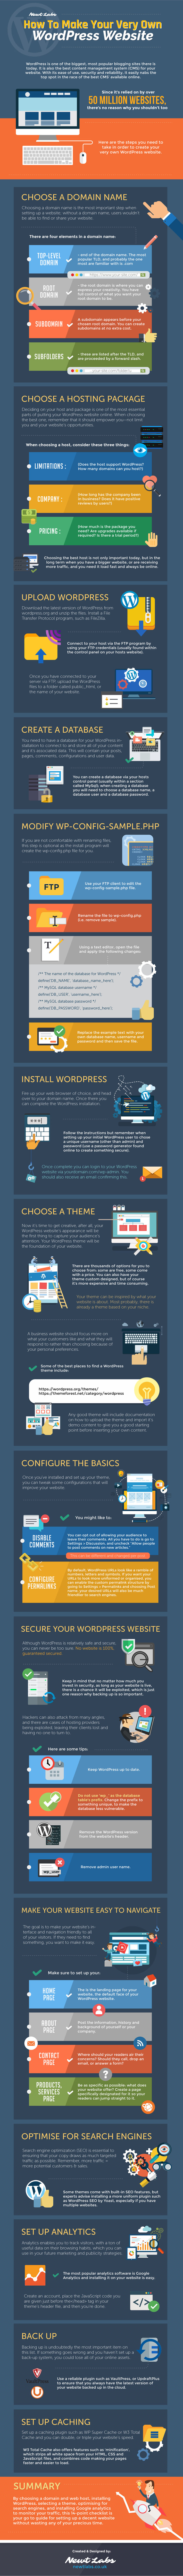 an infographic on how to make a wordpress website